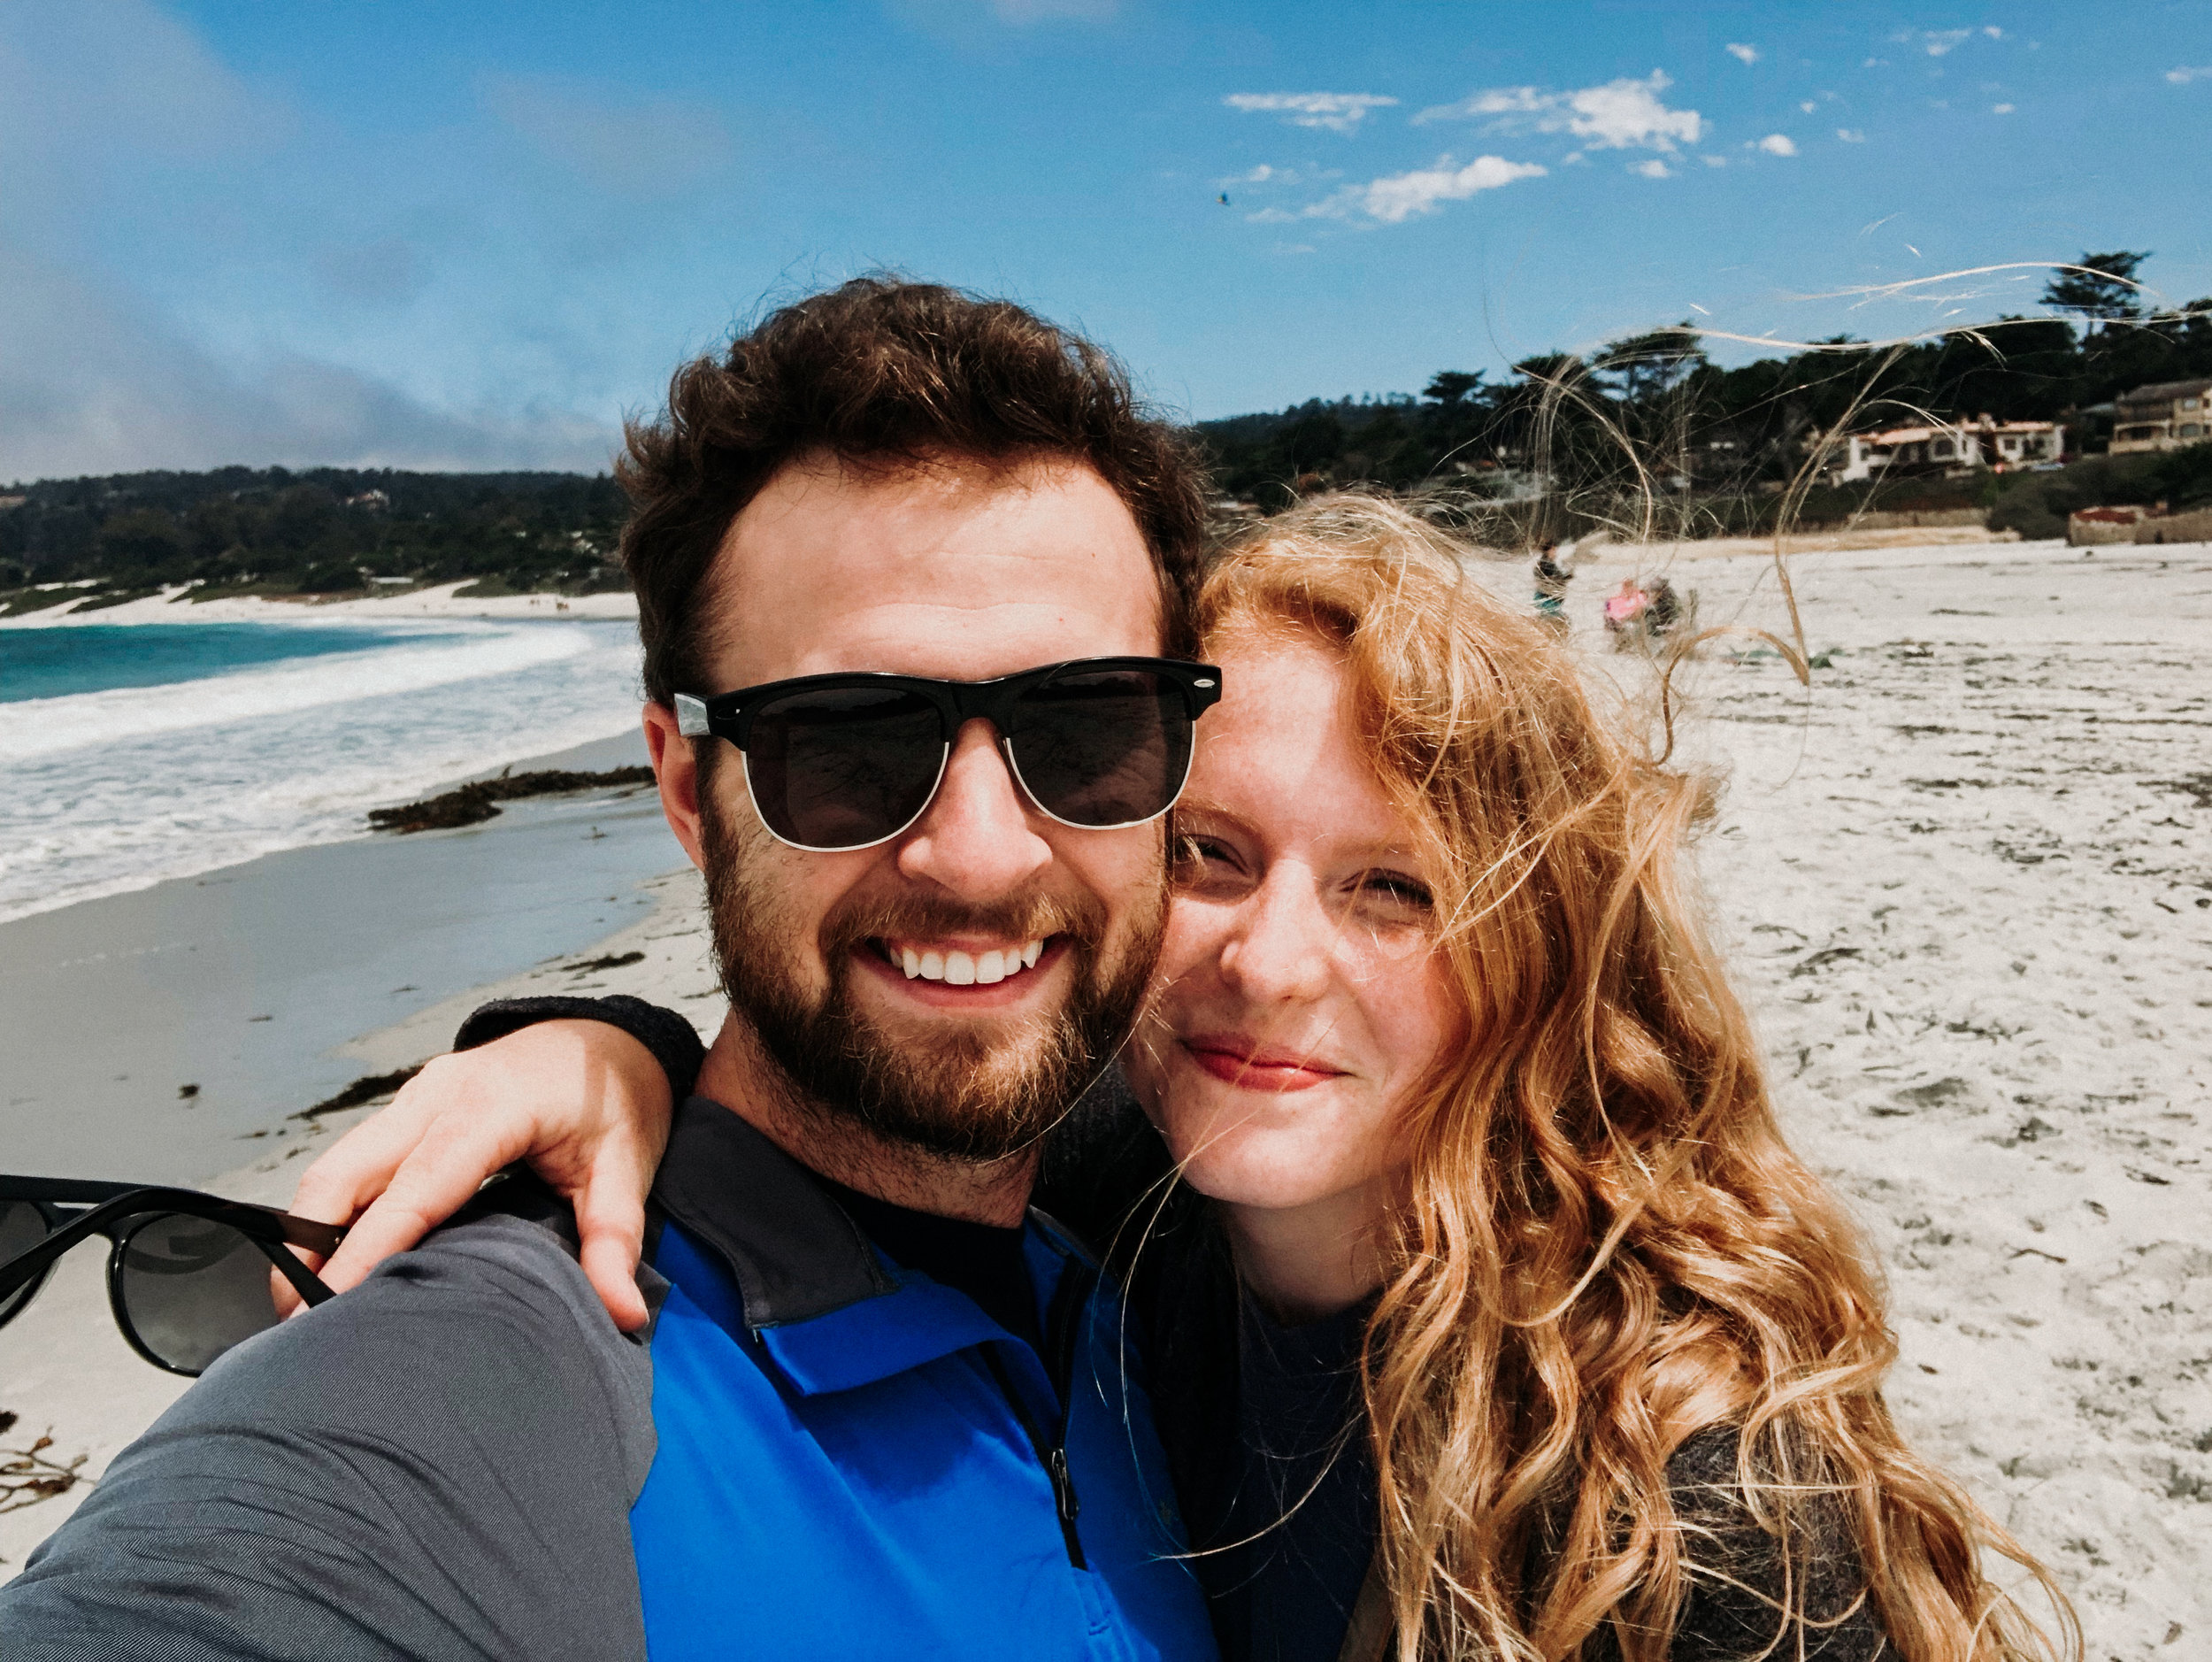 Because we couldn't go to Yosemite, we headed to Carmel and Big Sur instead and enjoyed some luxury